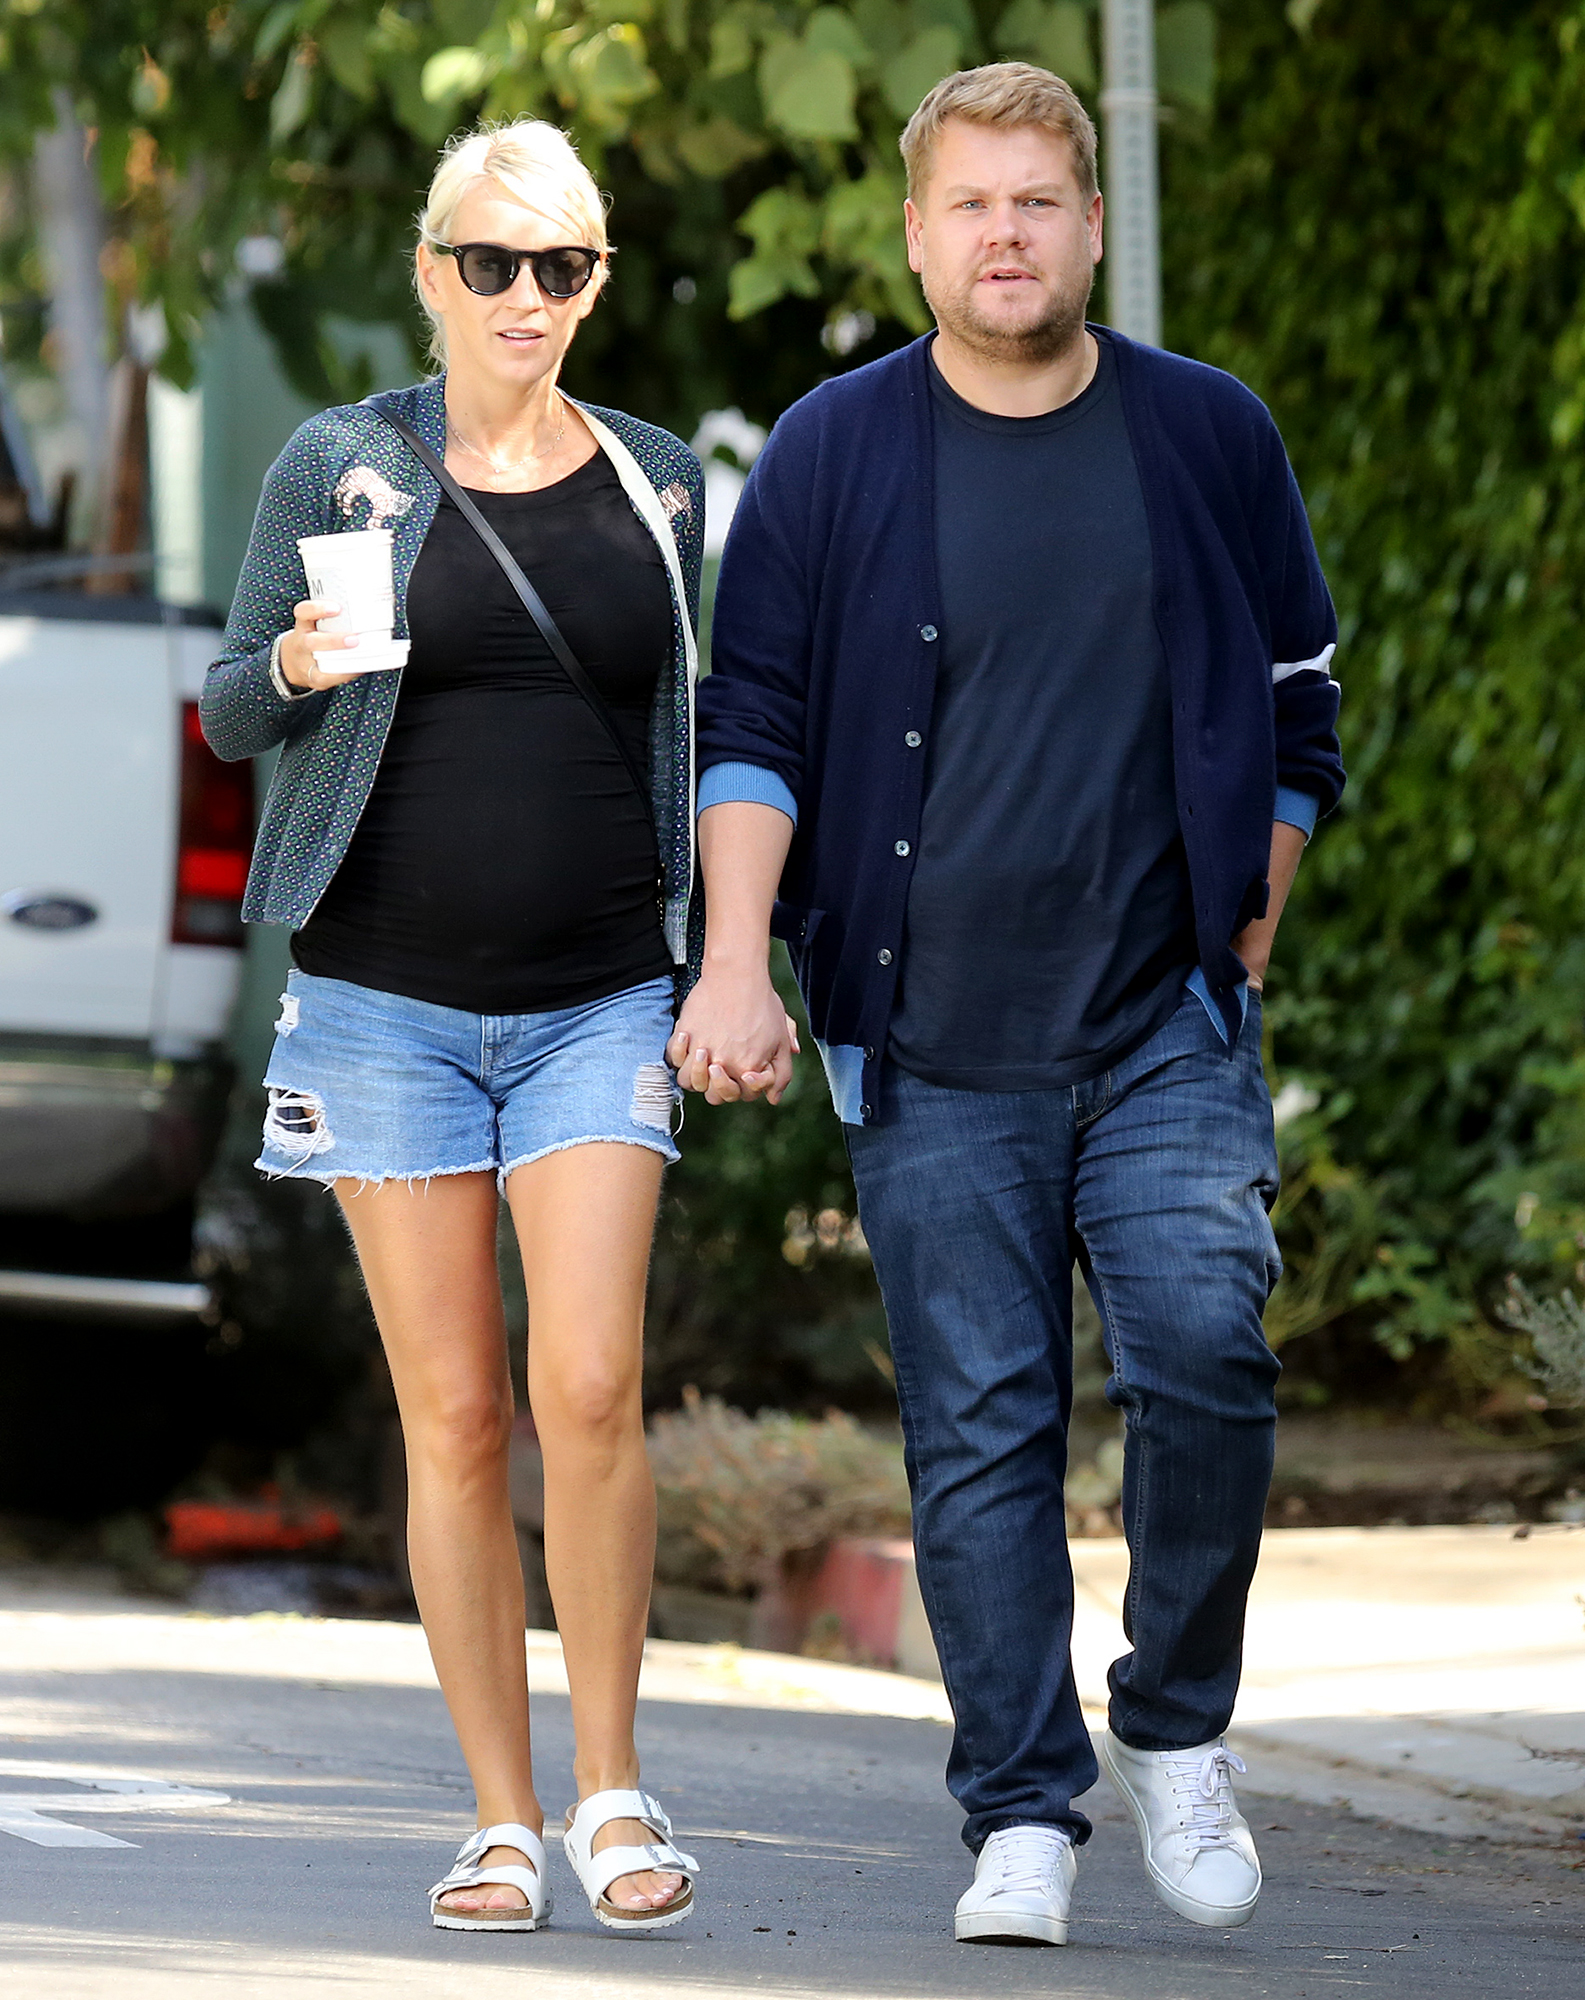 EXCLUSIVE: James Corden smiles with his pregnant wife in LA.